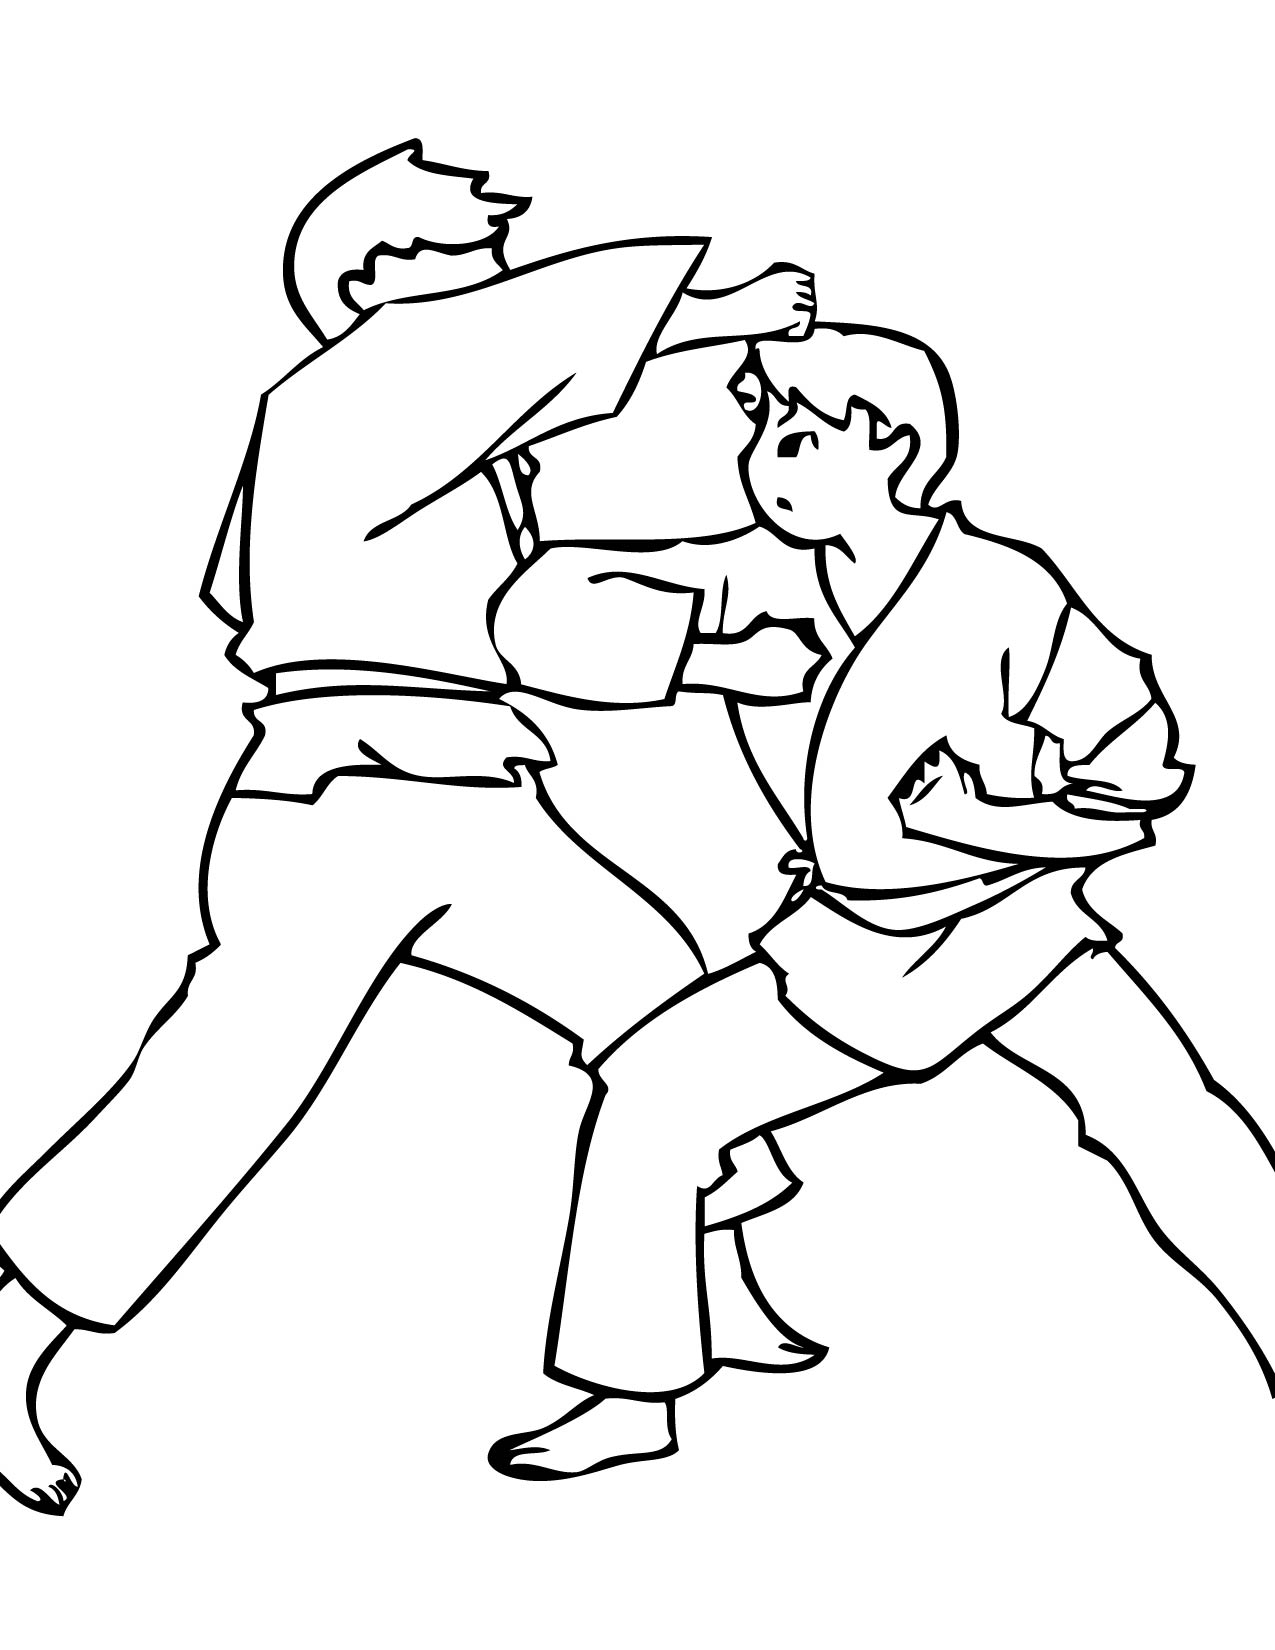 Free coloring pages karate - Free Karate Coloring Pages To Print For Kids Download Print And Color